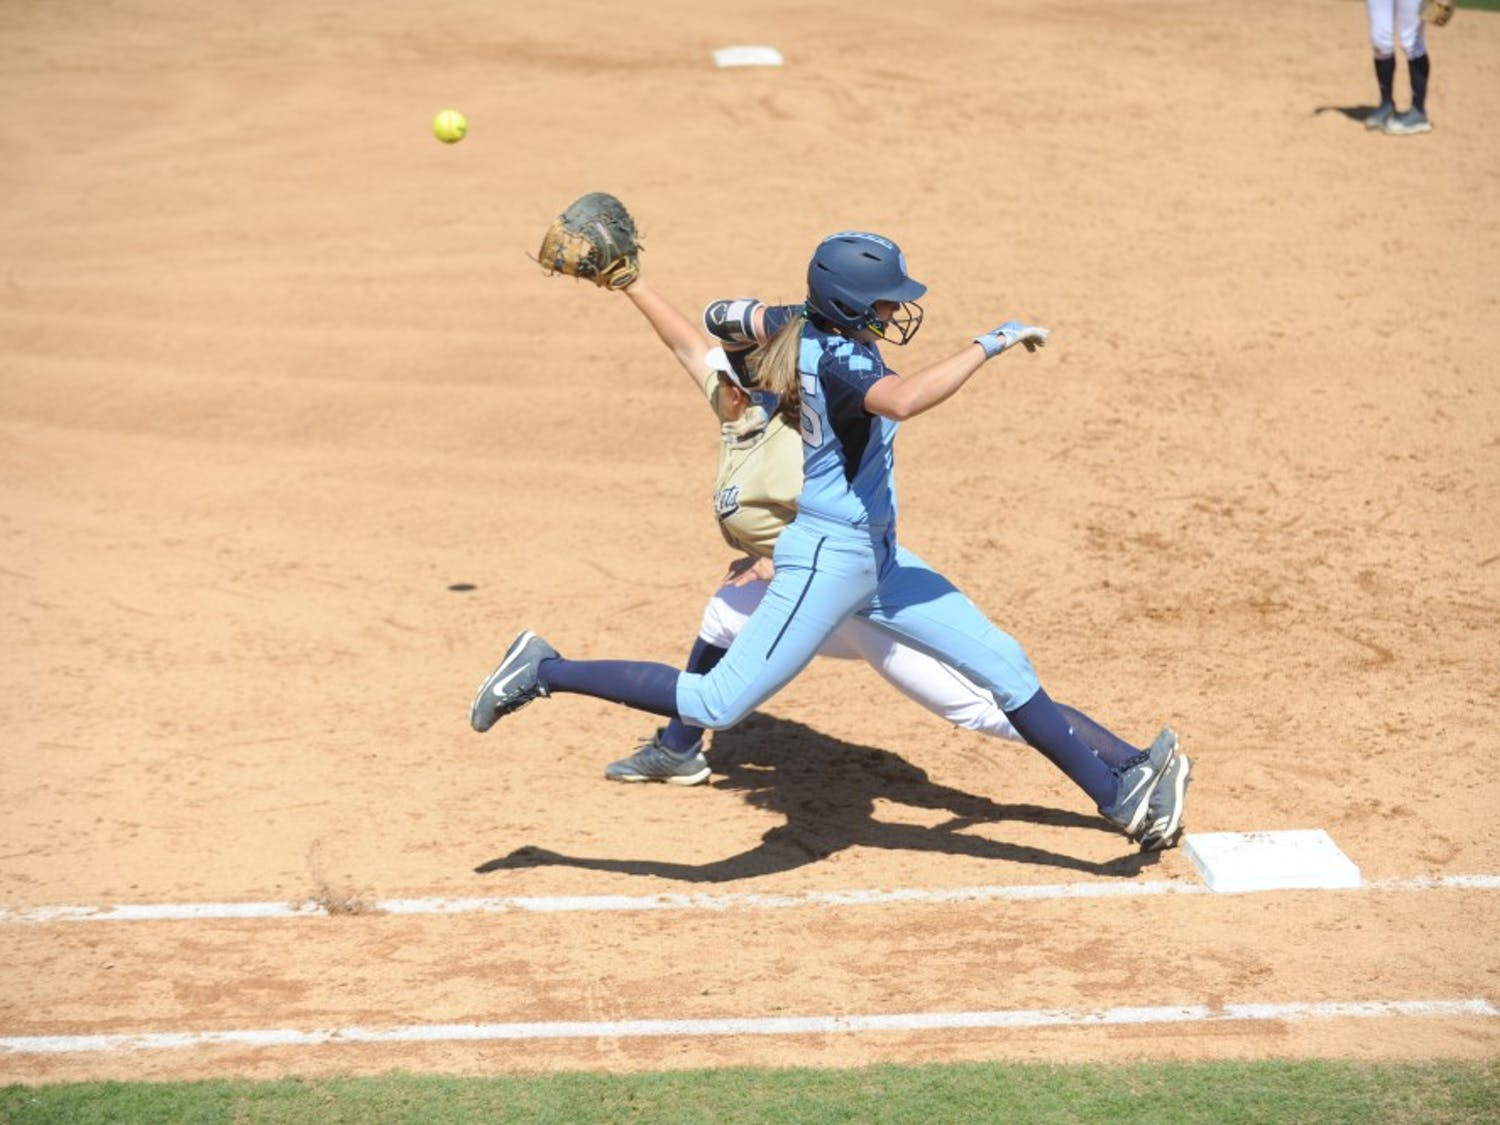 Megan Dray (55) reaches first base safely during UNC's Softball game vs. Georgia Tech on Sunday, Mar. 24. UNC lost the game 3-2.